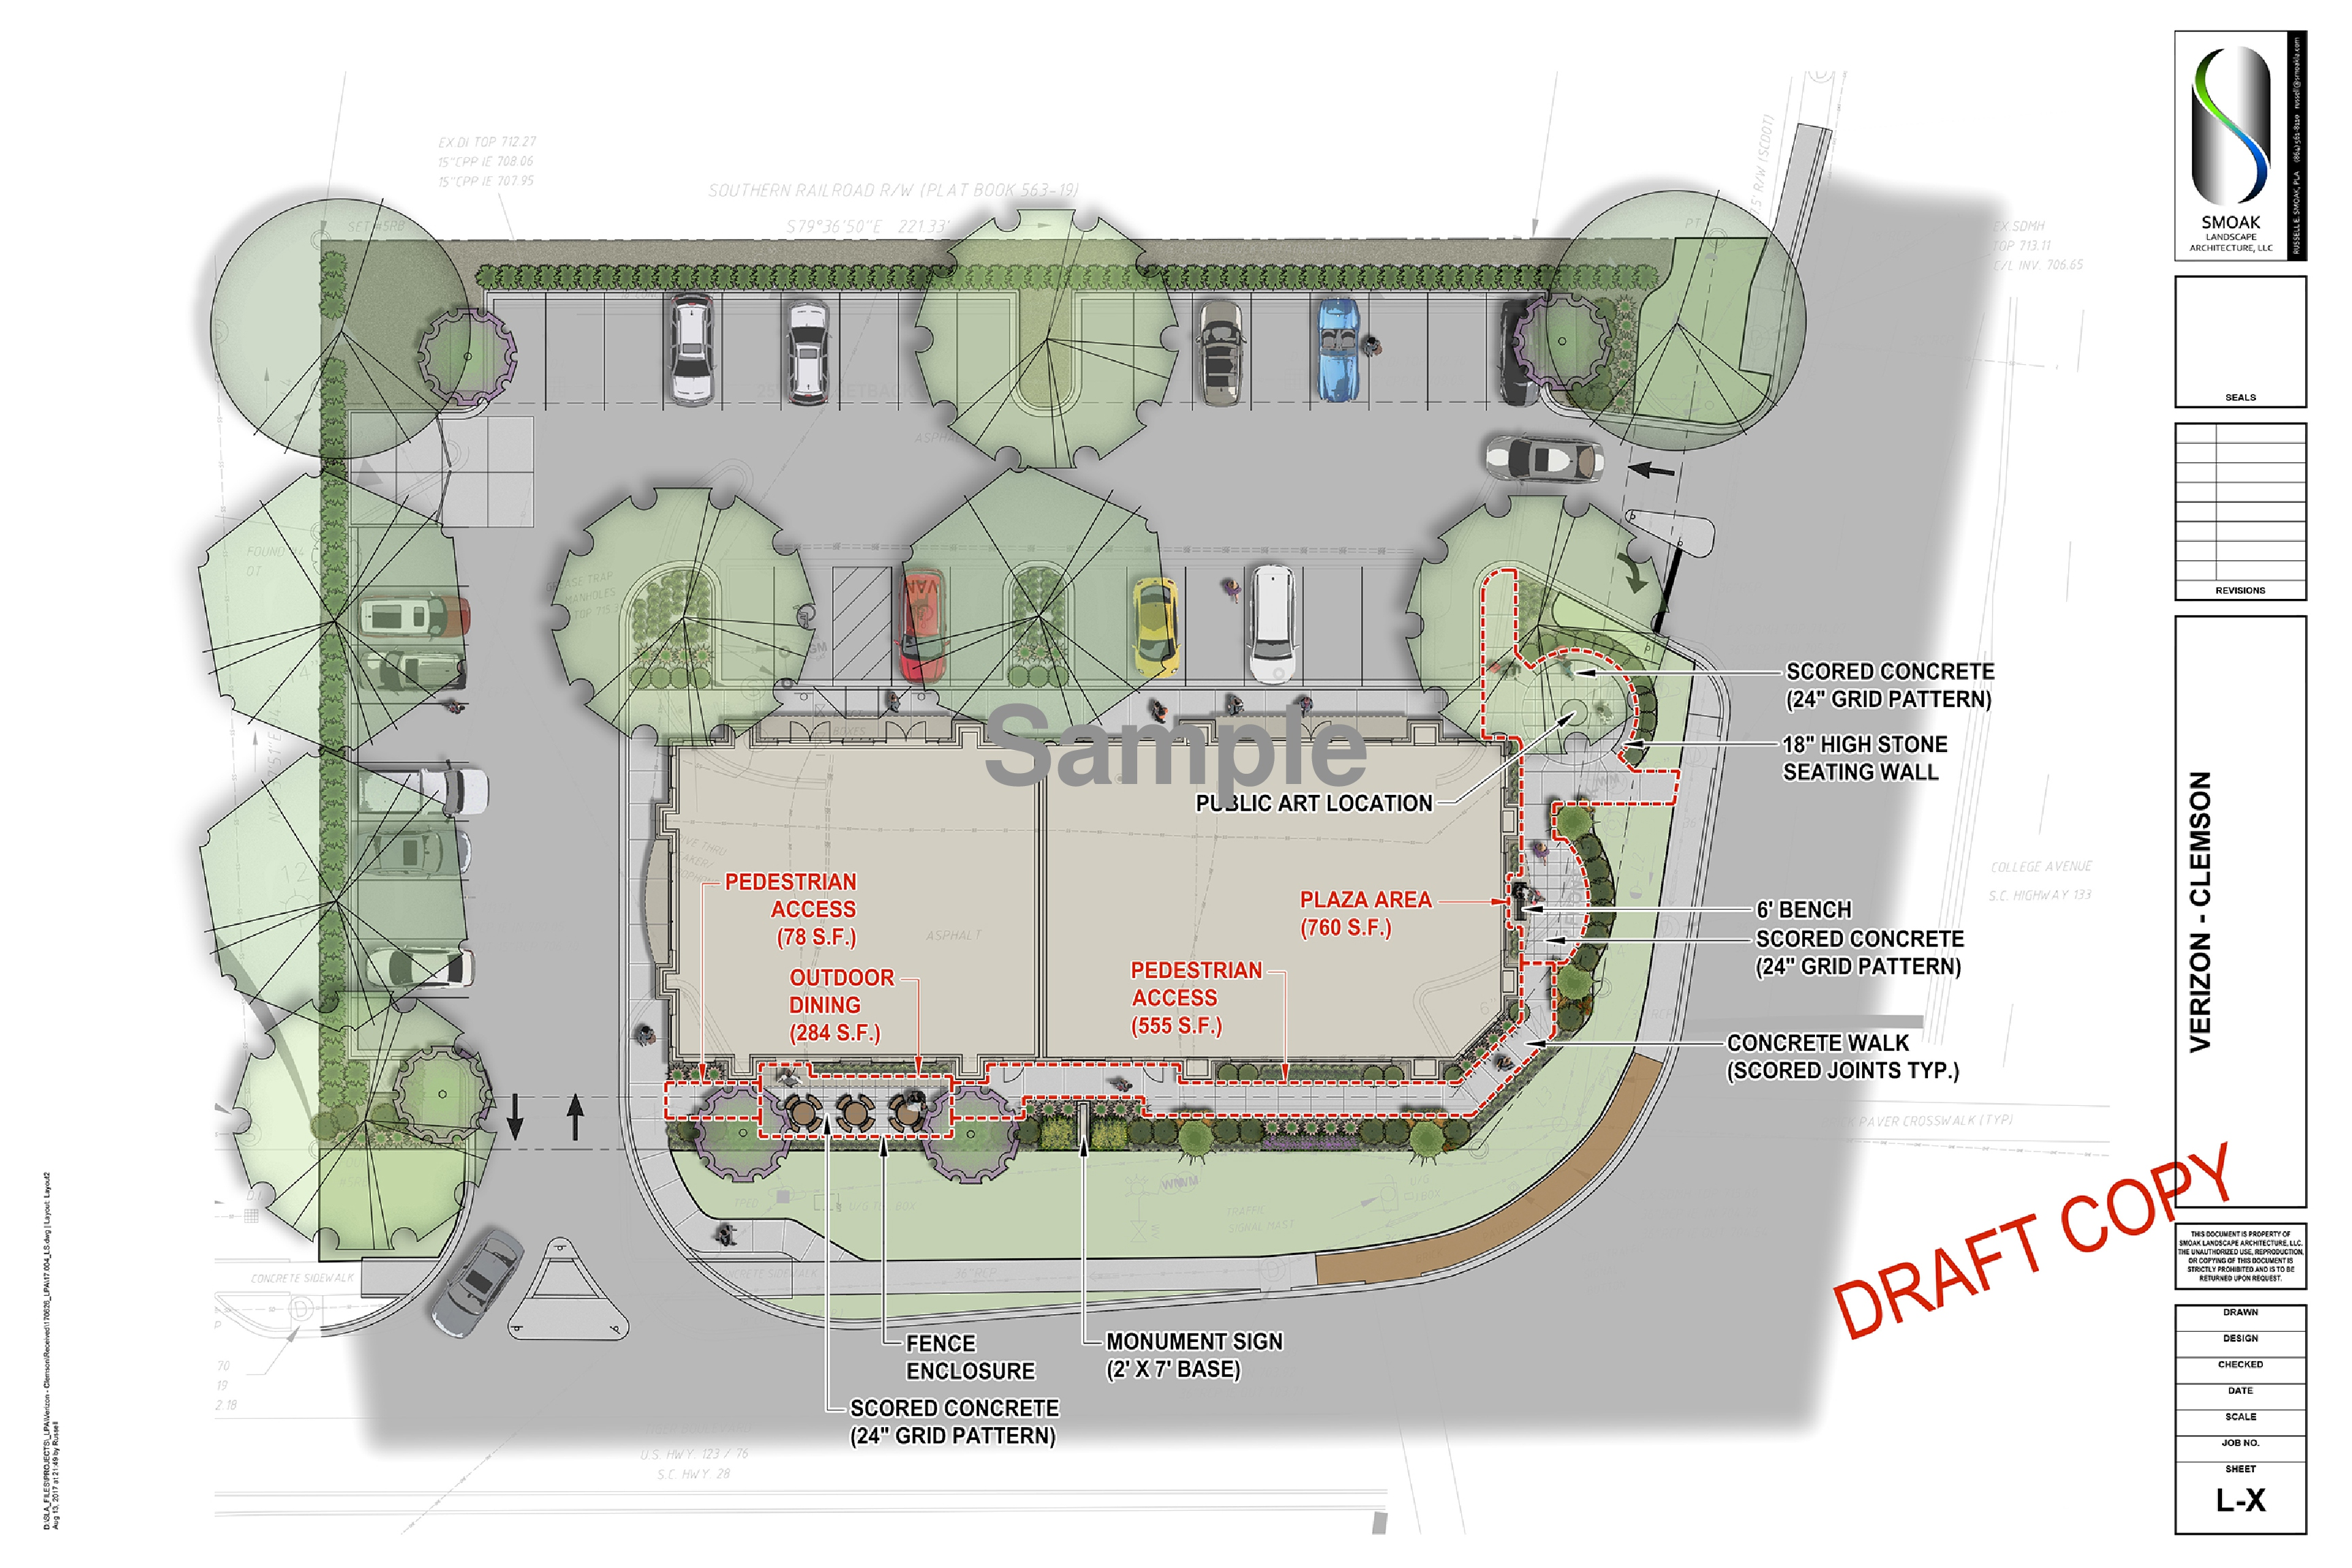 Retail Restaurant Space Available For Lease 1075 Tiger Blvd Schematic Clemson